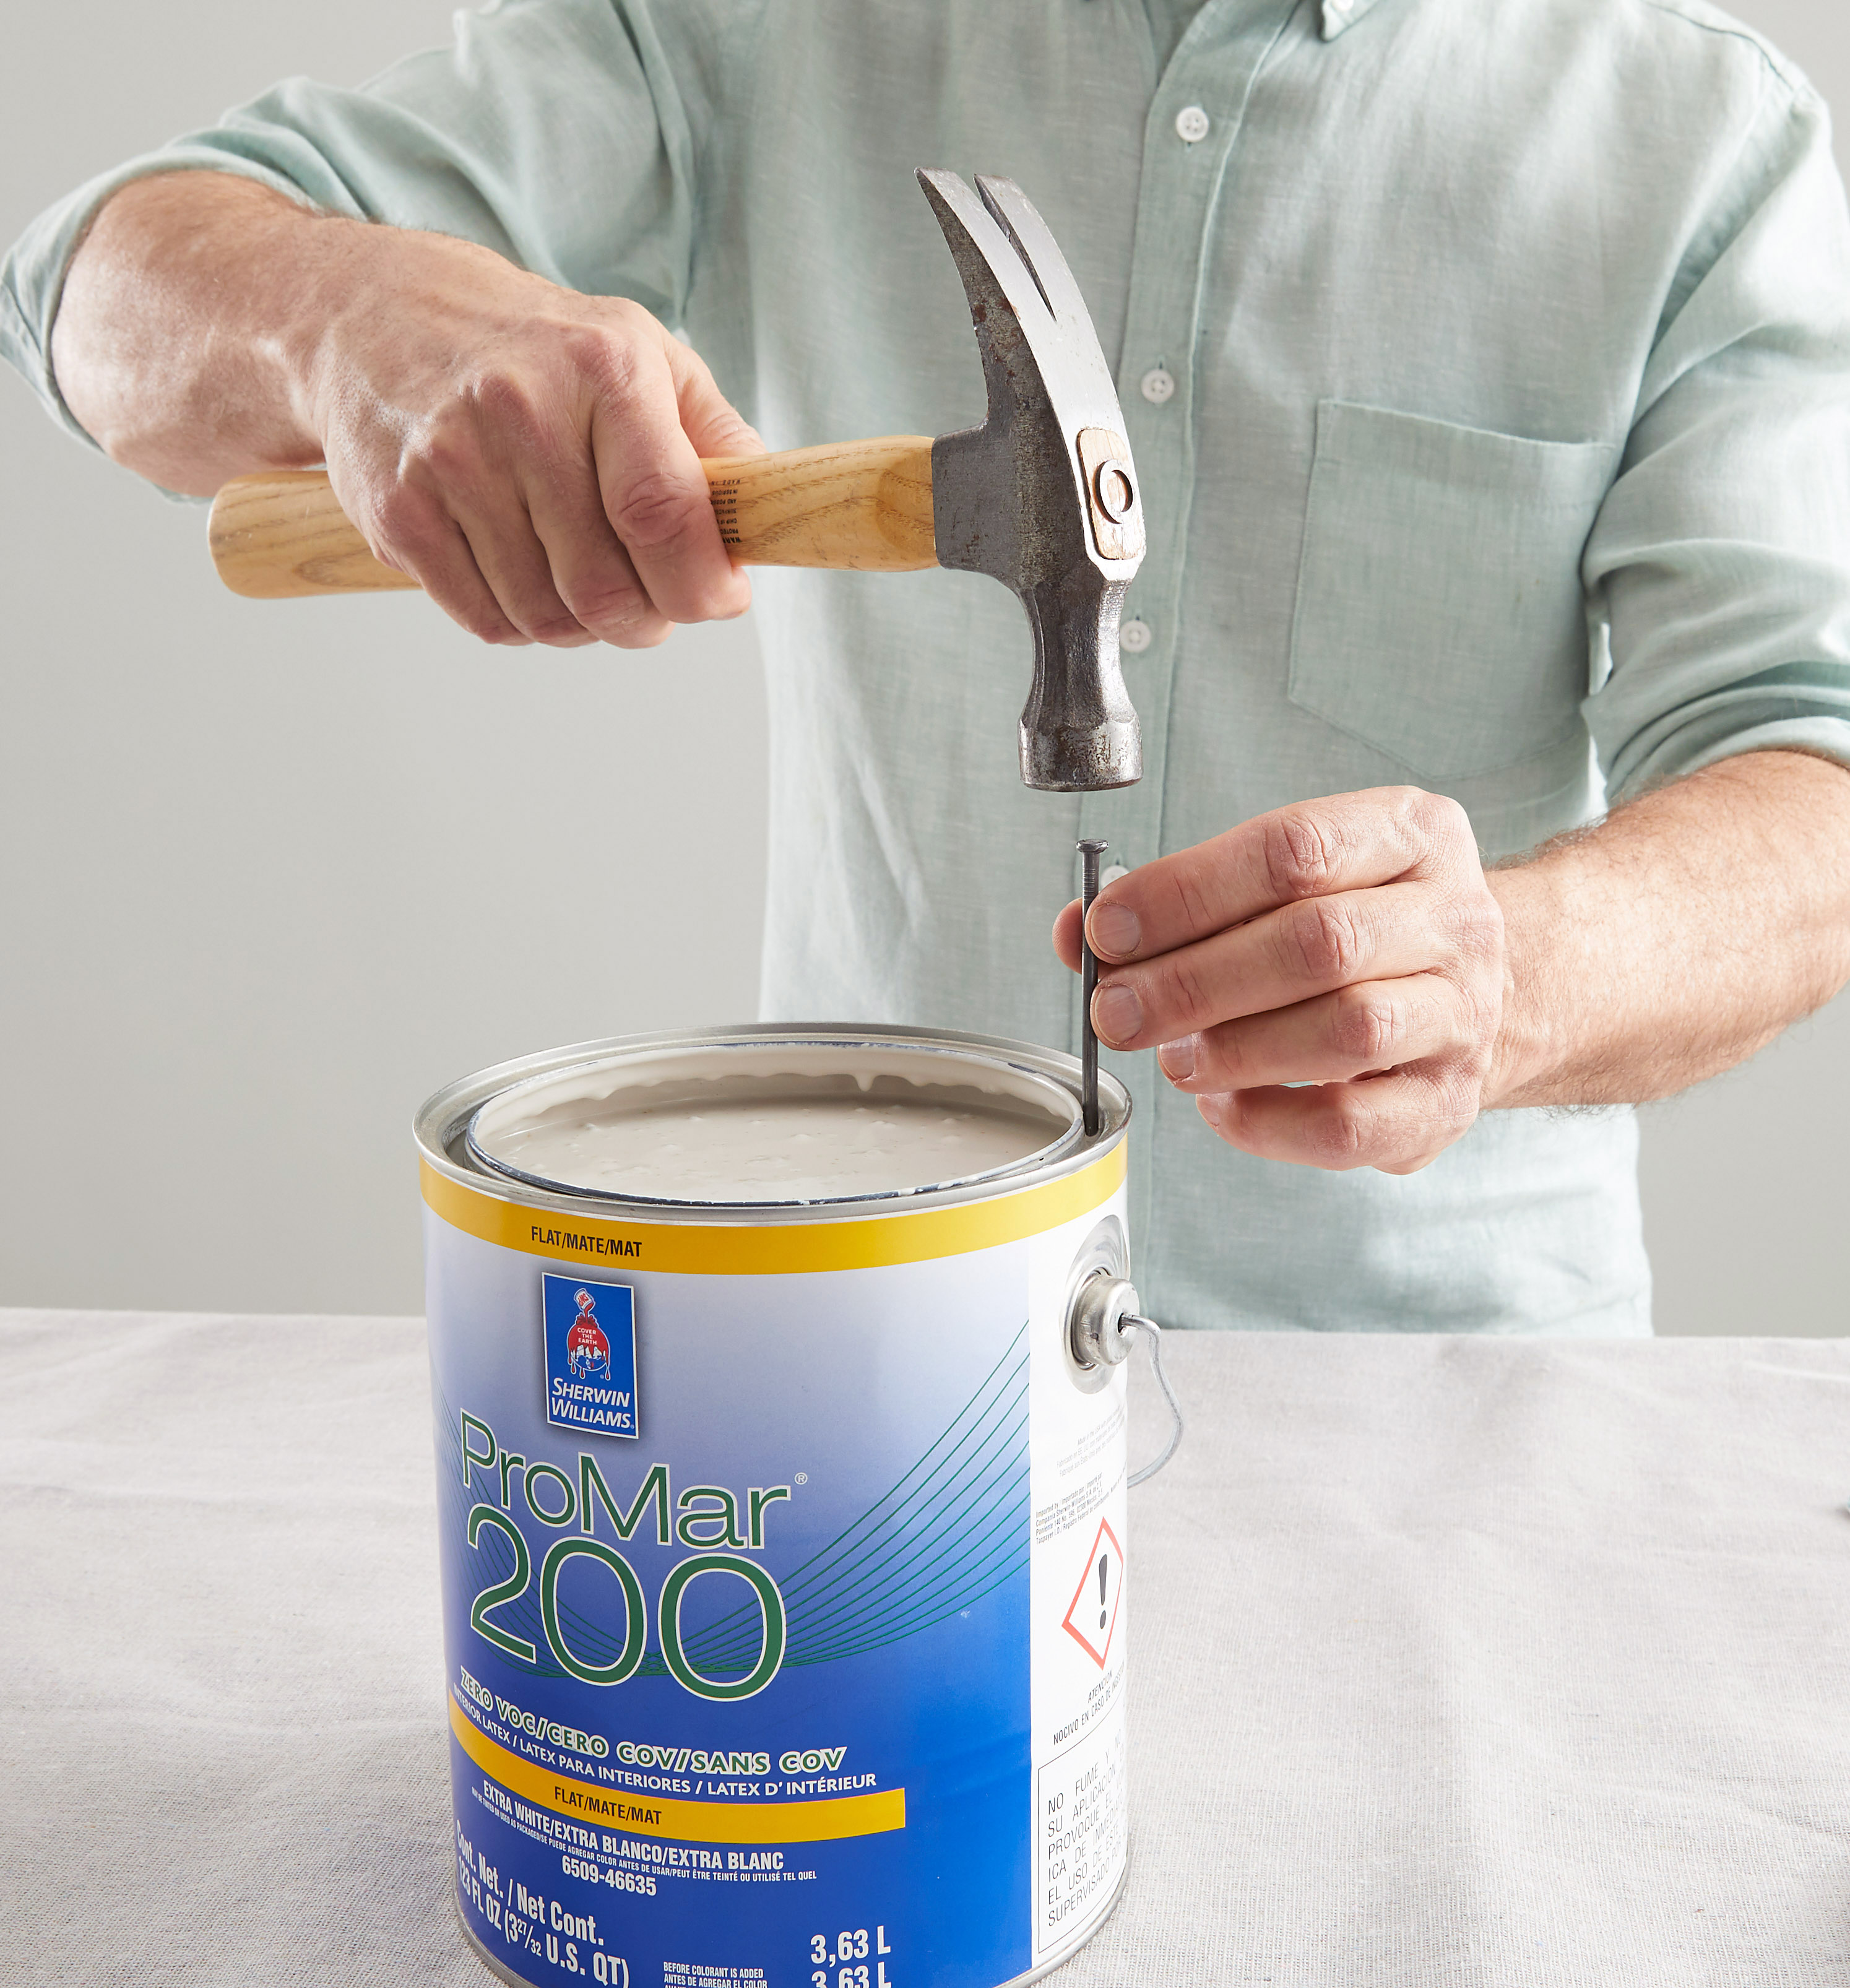 tap nail into paint can top with hammer